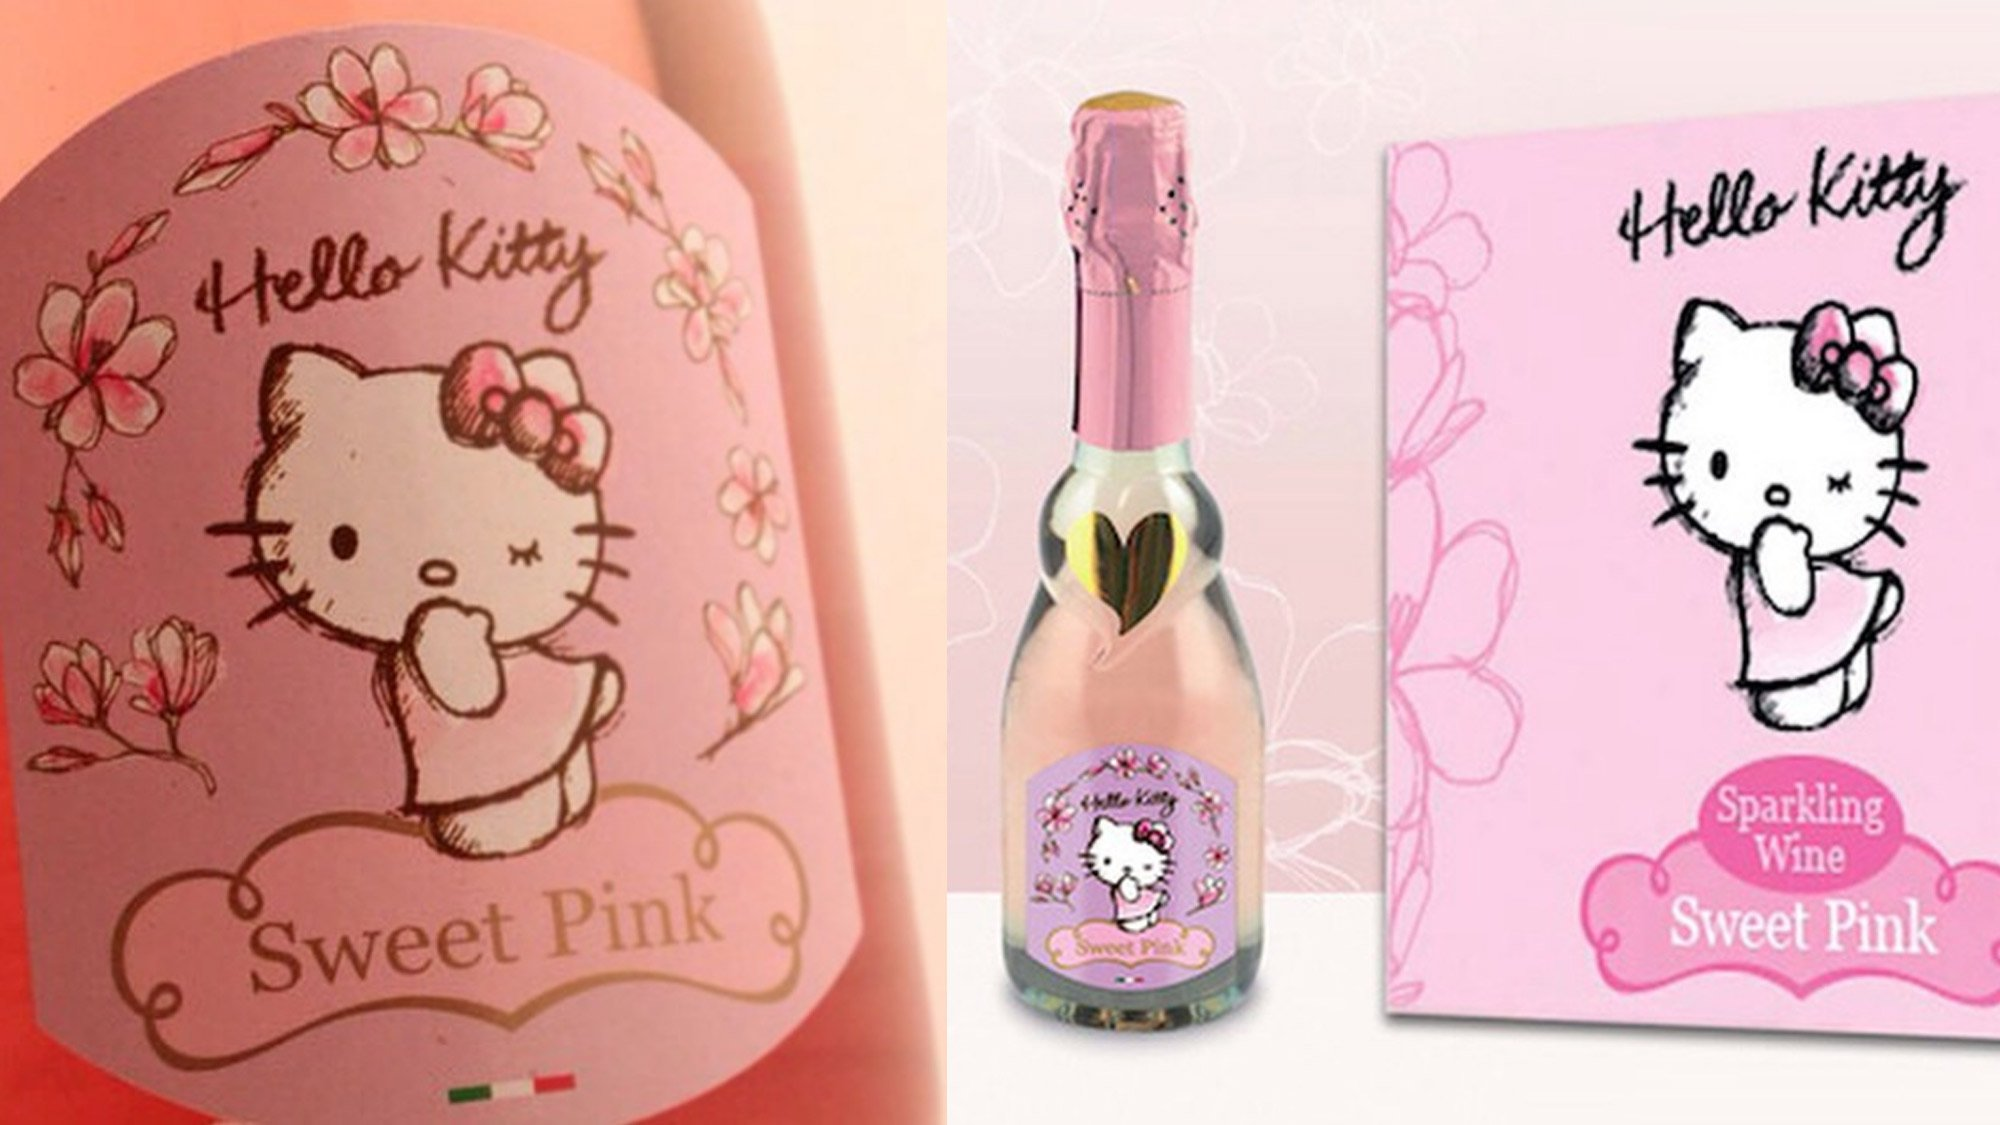 vin-hello-kitty